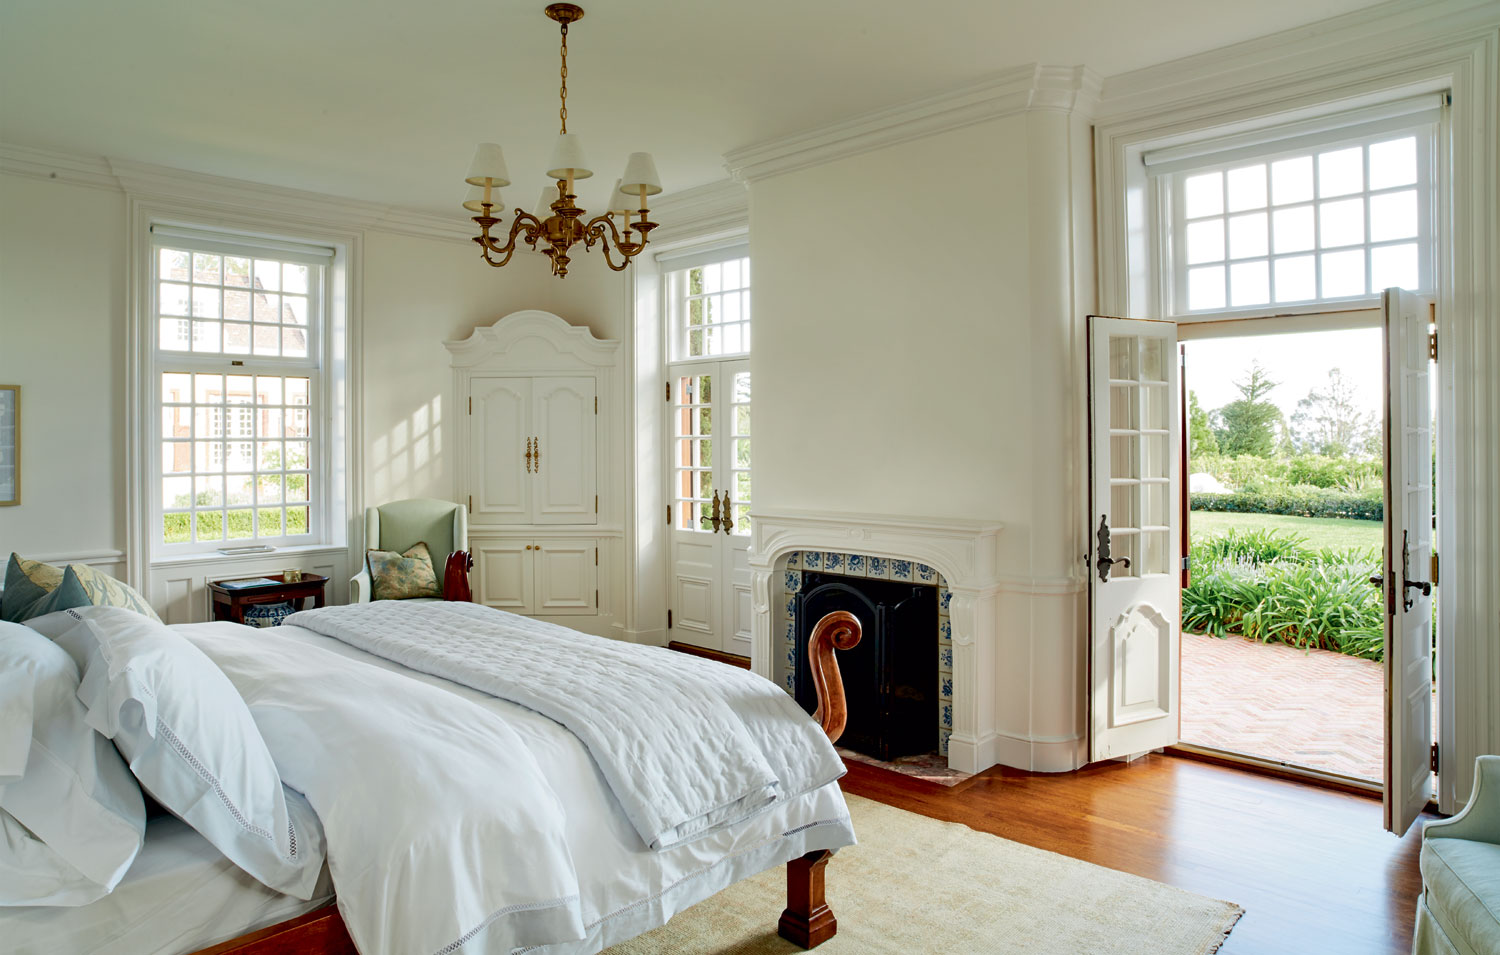 Traditional mahogany paneling, fireplaces, and finishes dovetail seamlessly with contemporary comforts.